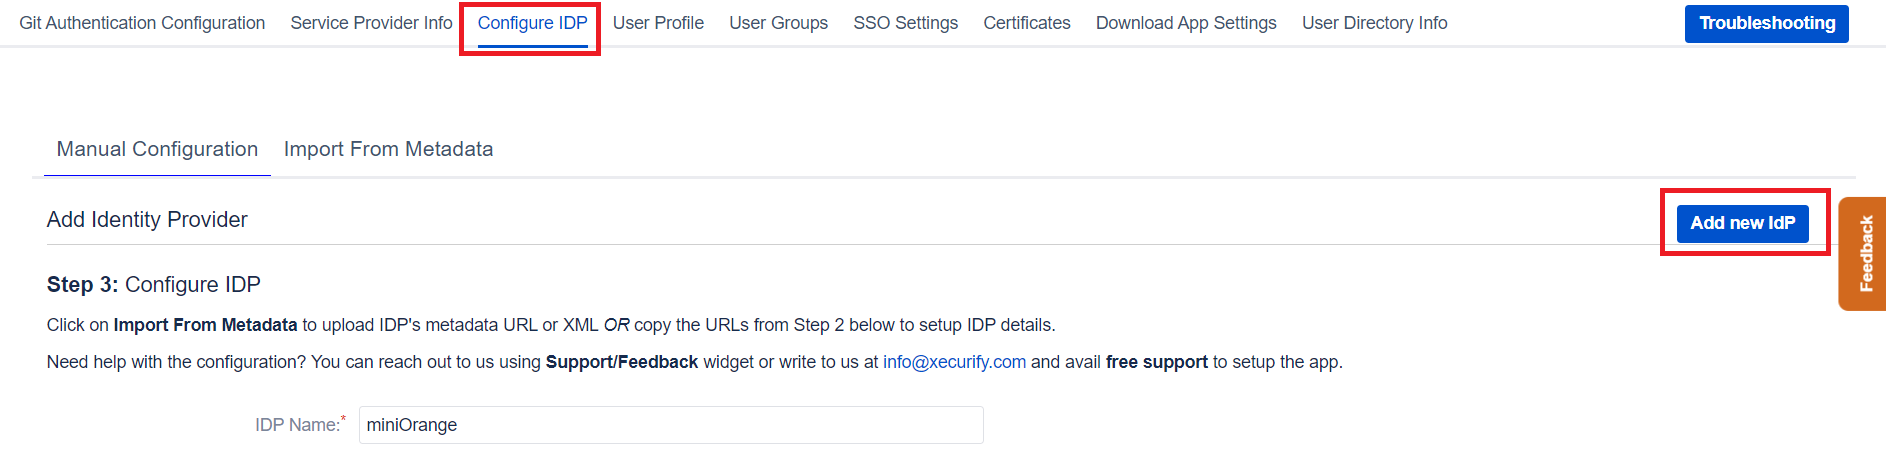 Bitbucket SAML Single Sign On, SSO-5